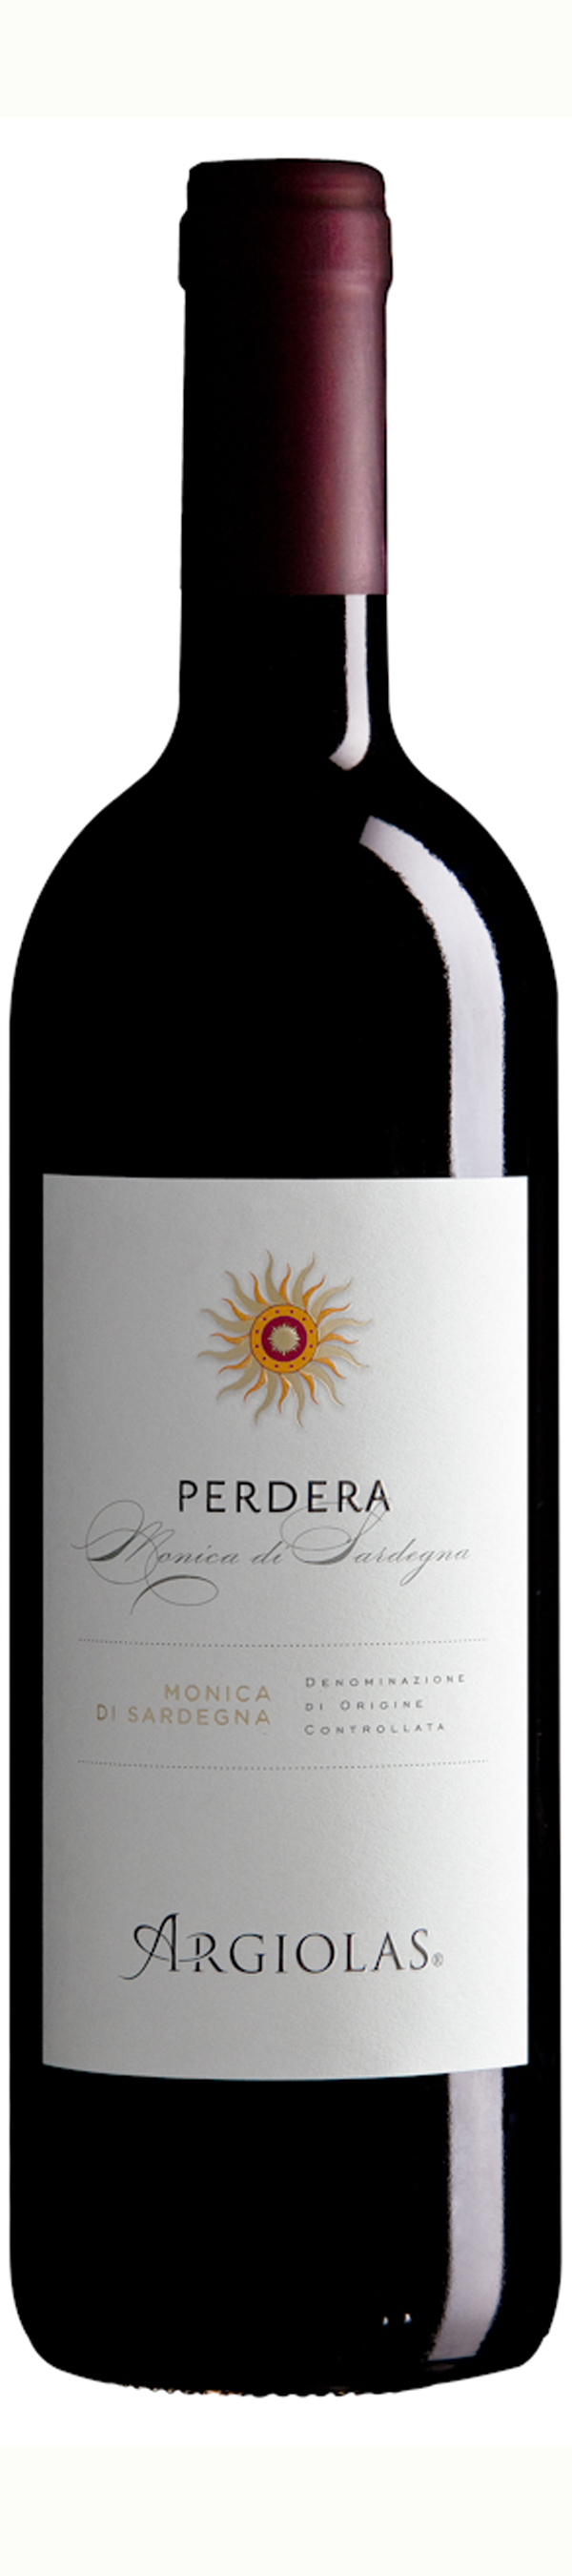 Argiolas Perdera 2010 Red Blends Wine Red Blends Wine